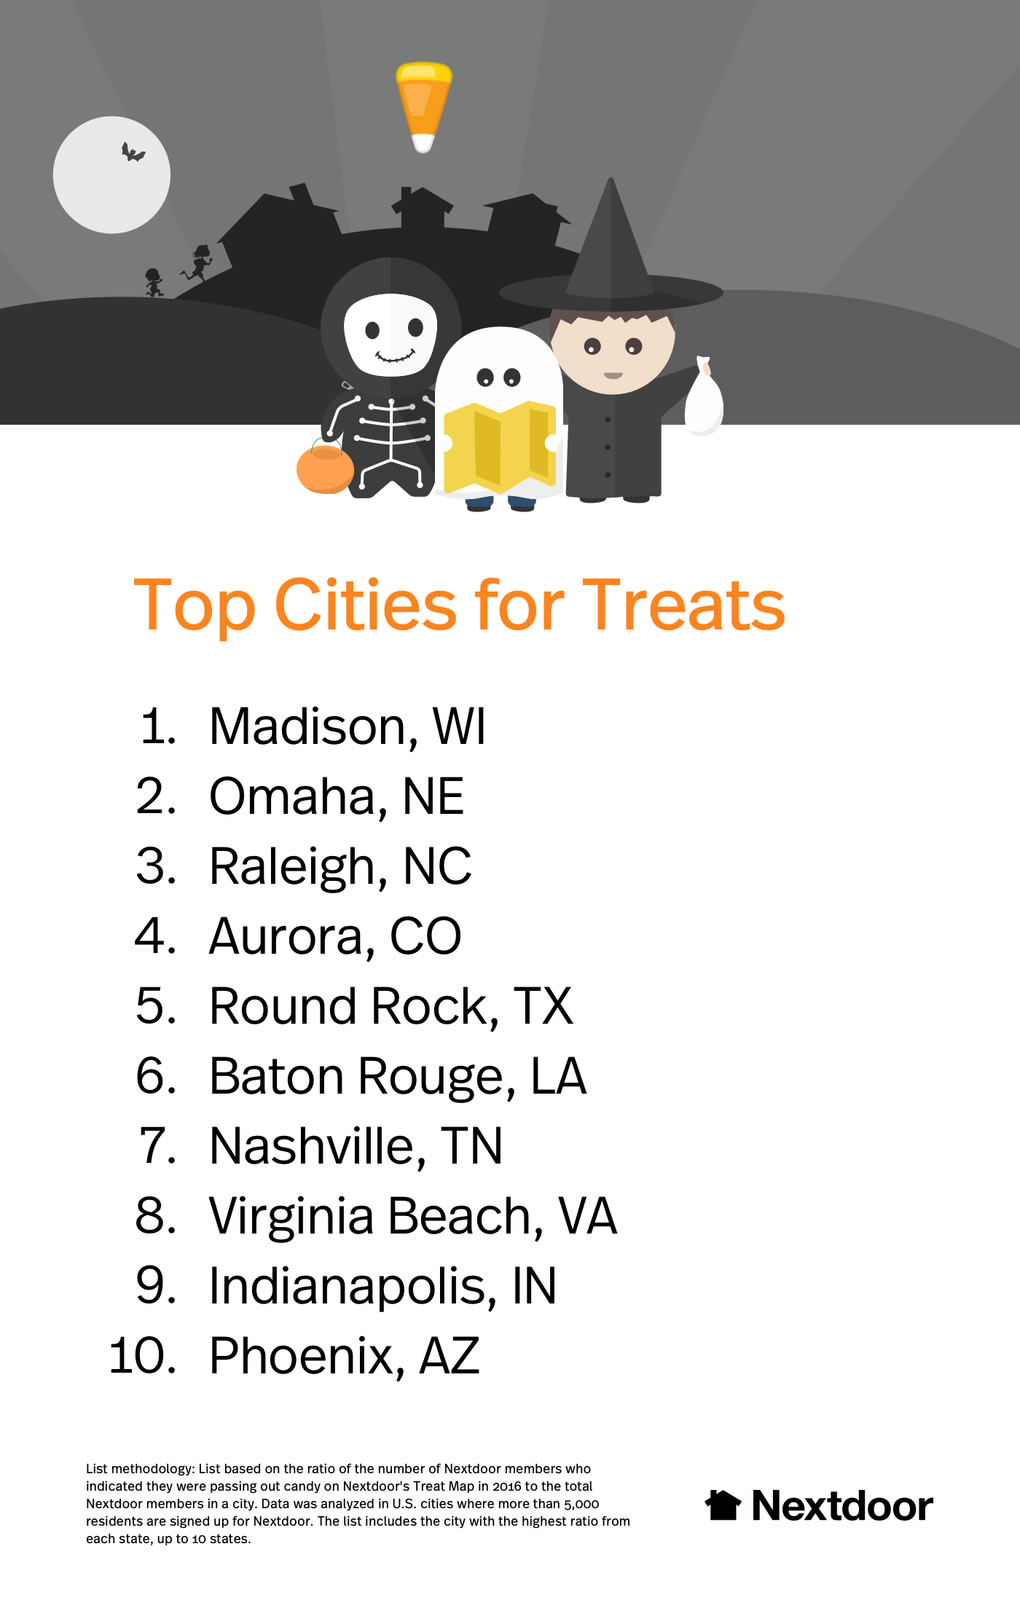 Nextdoor's trick-or-treat rankings